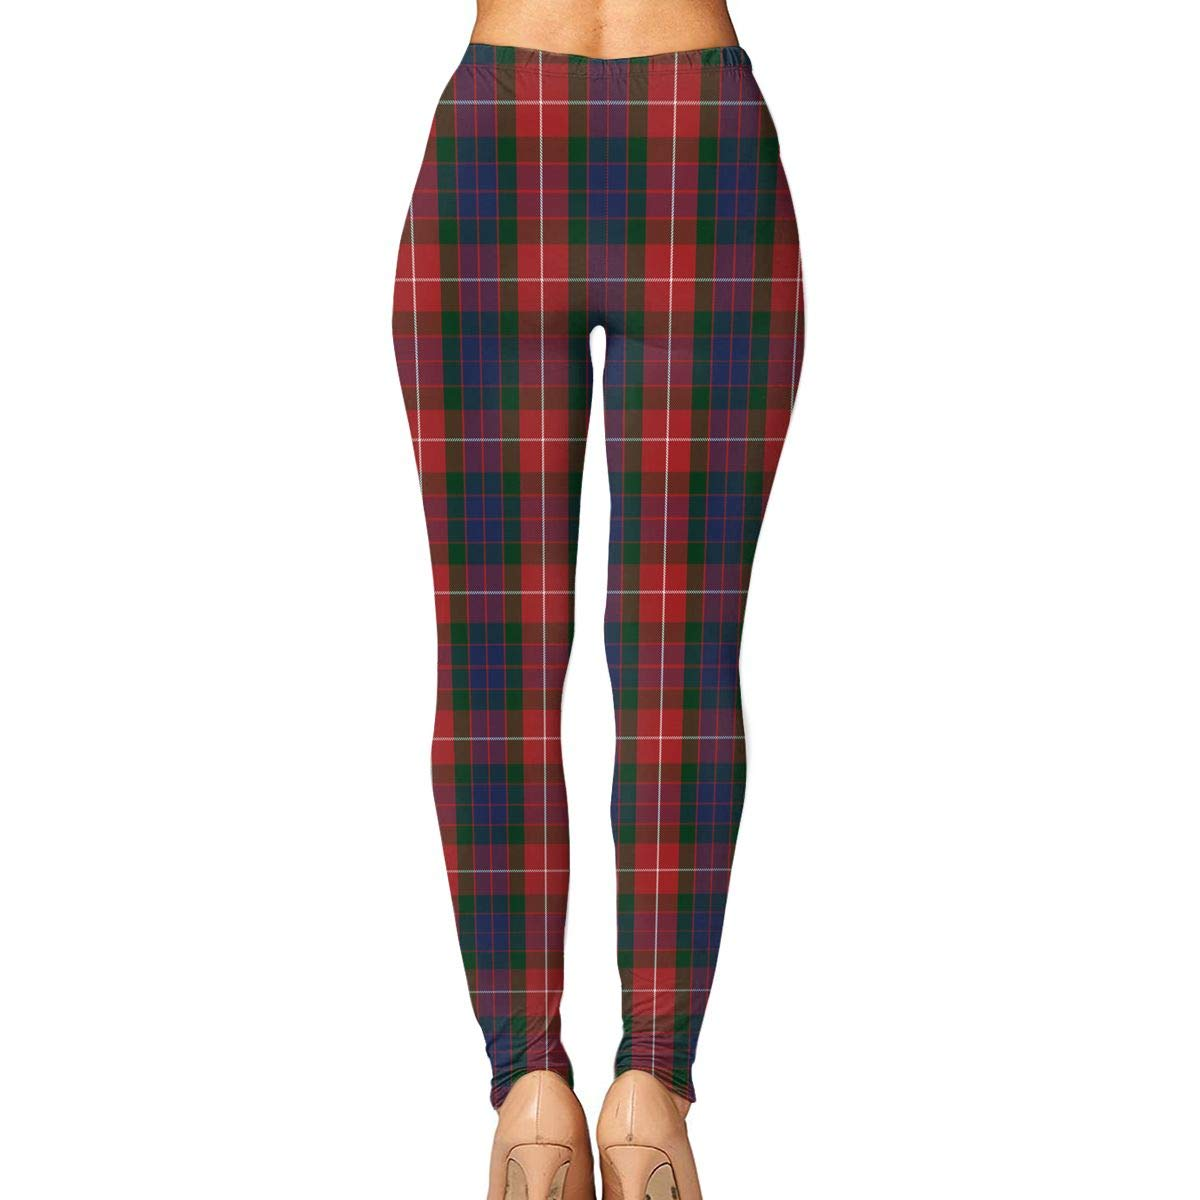 9a03723e1cce9 Amazon.com: Fraser Red Tartan Women's Yoga Leggings Running Tights Sports  Leggings: Clothing